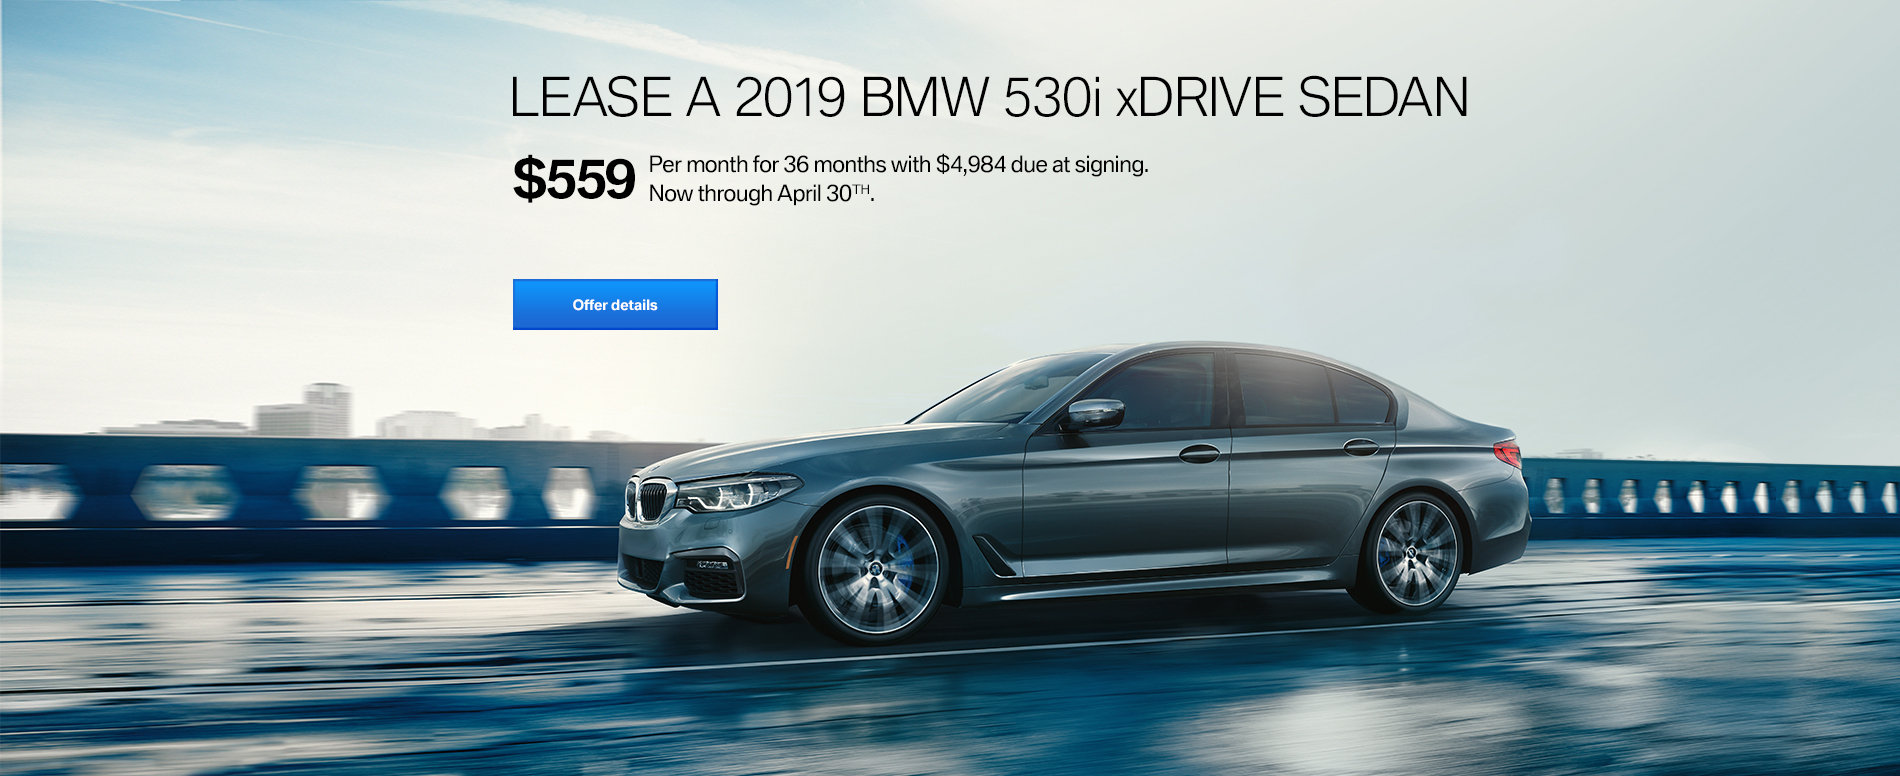 LEASE A 2019 BMW 530i FOR $559/MONTH FOR 36 MONTHS WITH $4,984 D